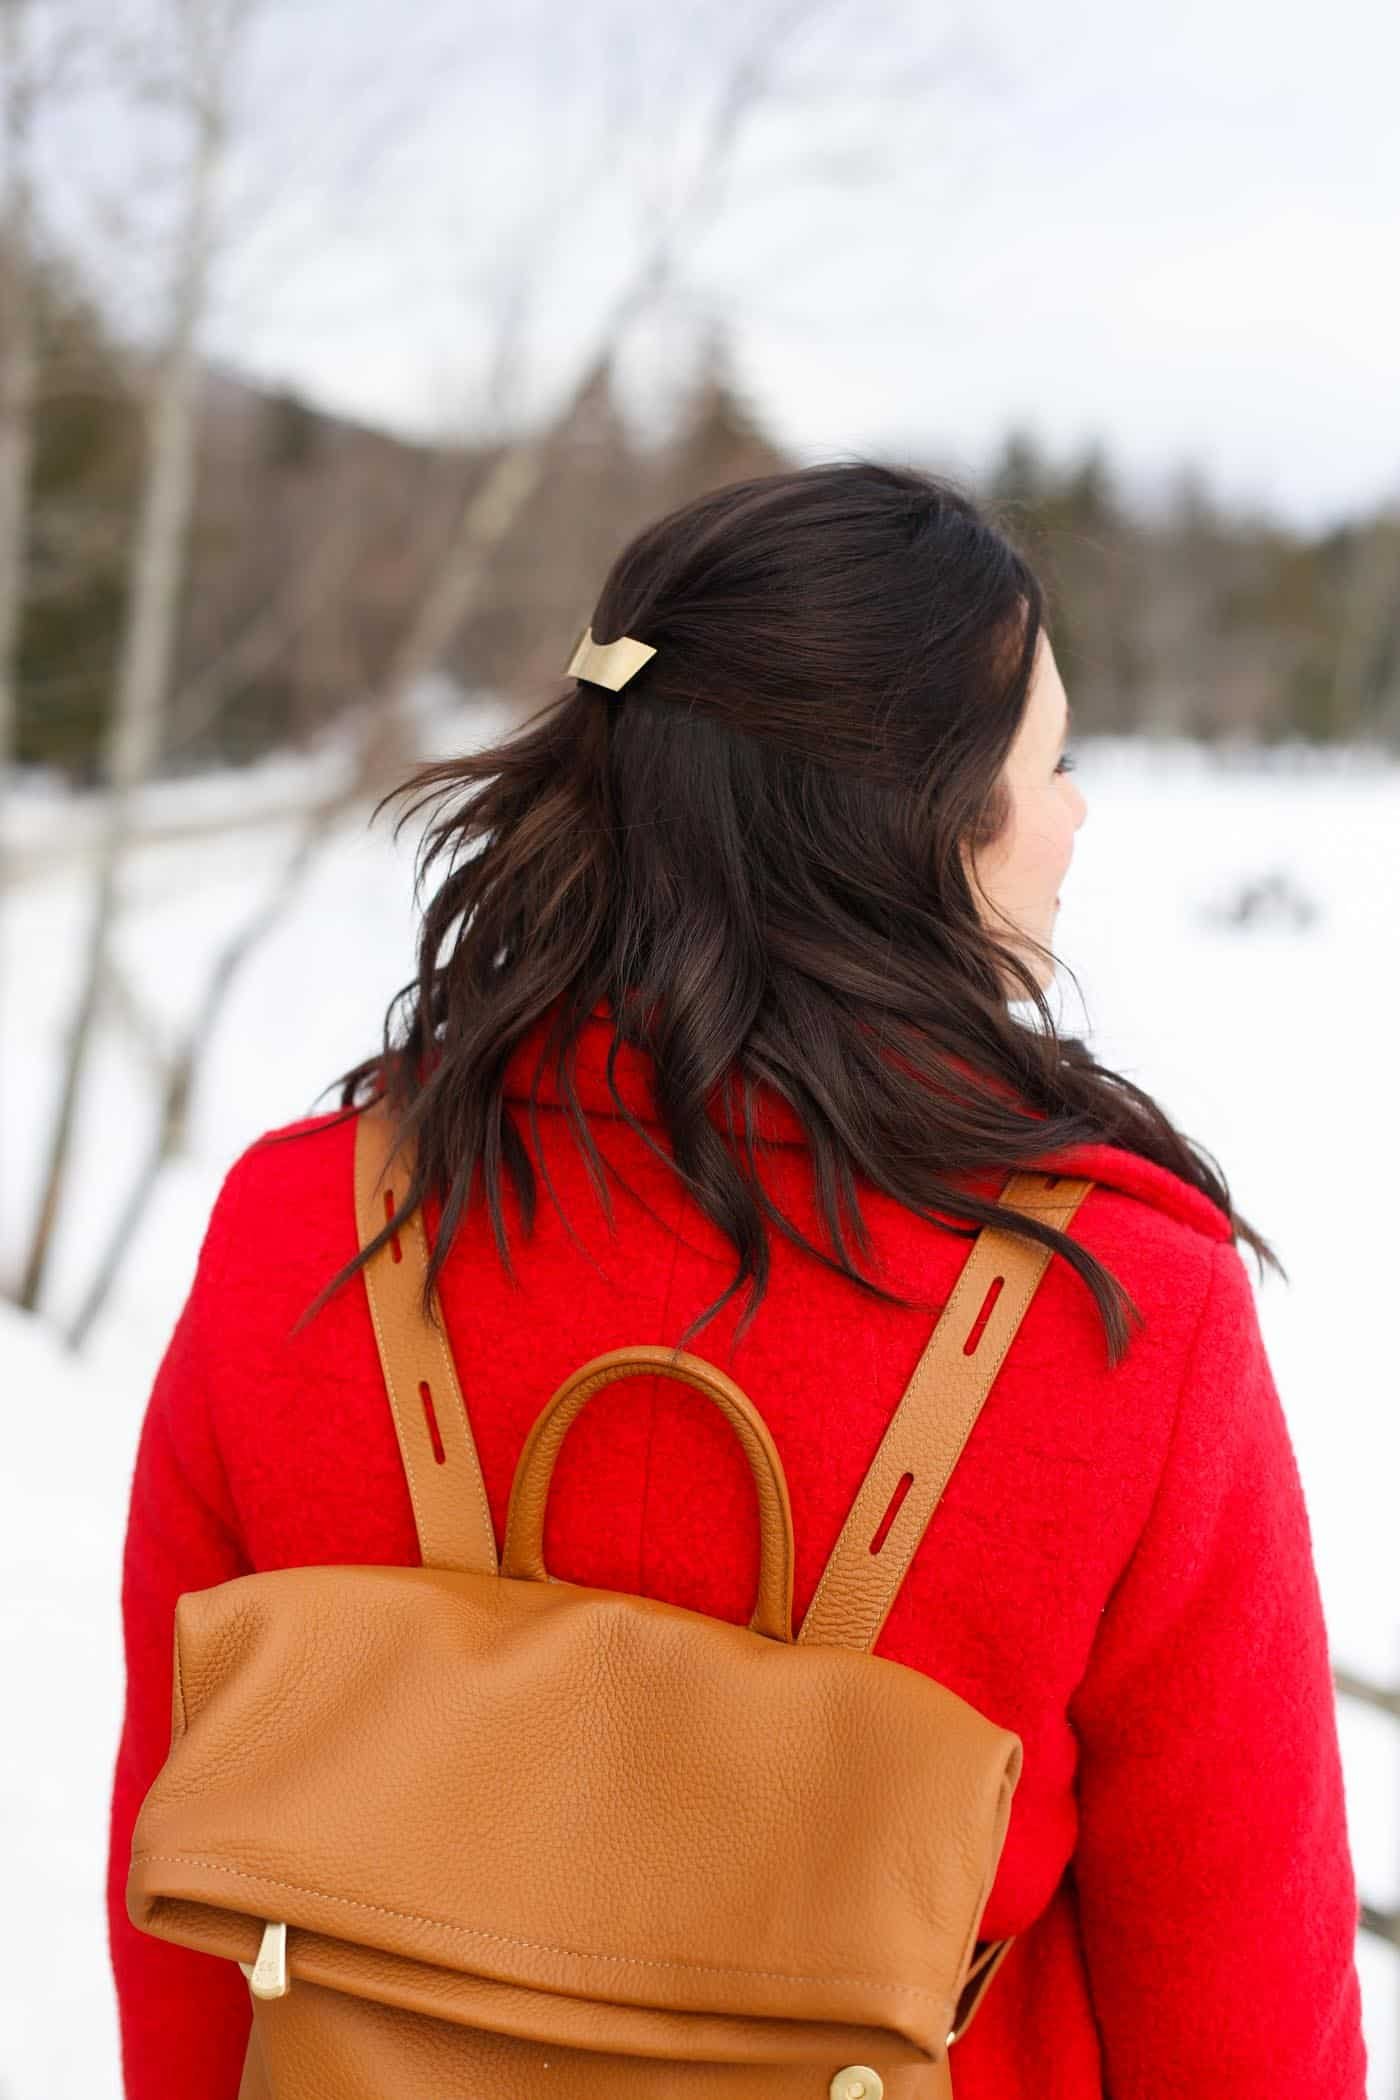 gold hair clip, red winter coat, winter wonderland - My Style Vita @mystylevita